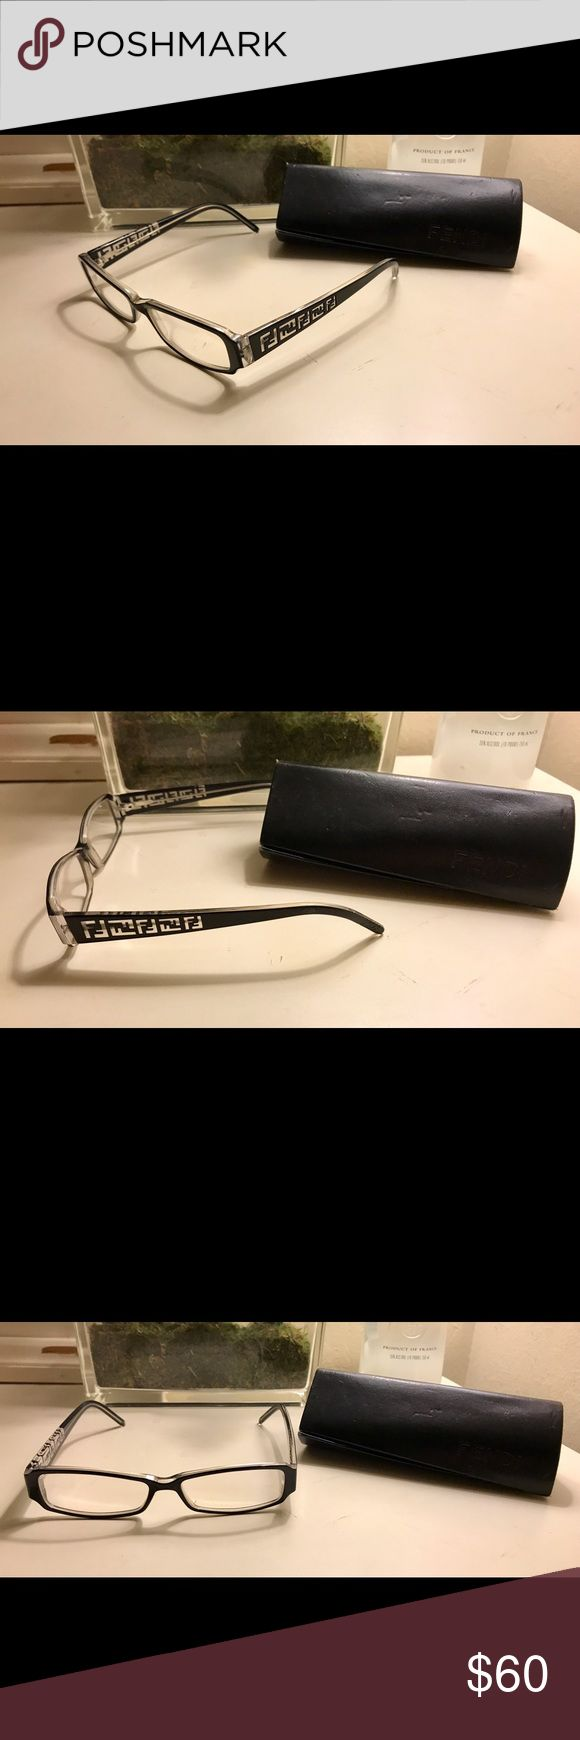 """Fendi unisex eyeglasses with case Fendi unisex model 664R frames in the color """"blackith crystals"""". Currently prescription lenses but a new prescription can be put in. The frame size is 0 x 14 x 140. Scratches shown in picture 4 on the frame part that goes over the ear. Glasses were bought for $260 and came out to $360 when the prescription was added. WILLING TO NEGOTIATE! Fendi Accessories Glasses"""